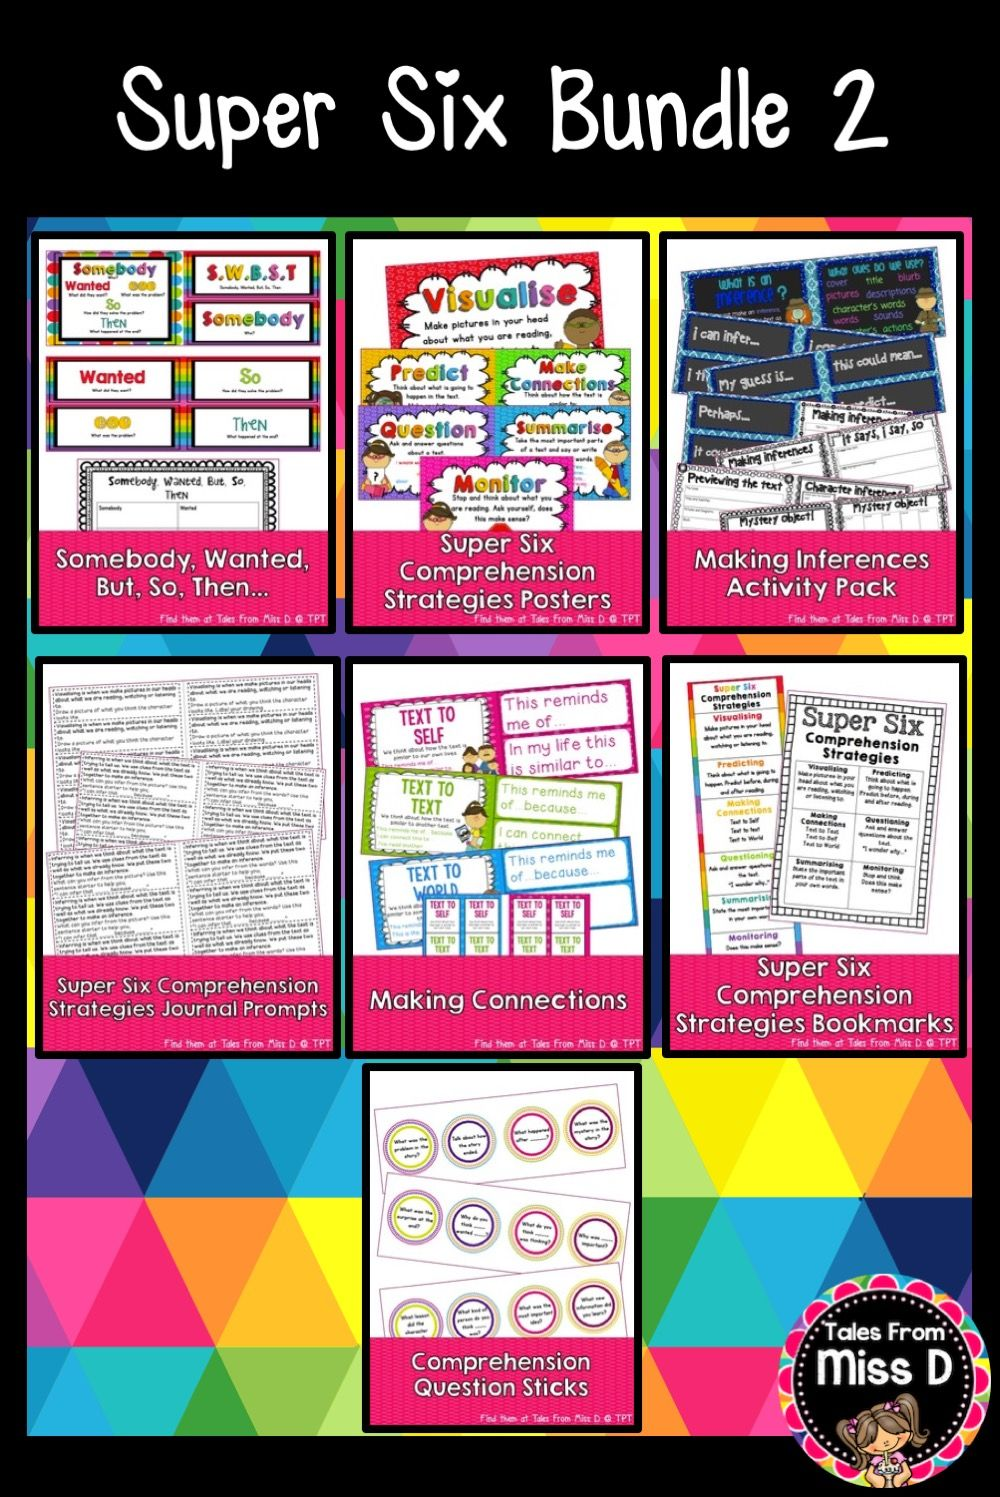 This Super Six Comprehension Bundle Provides You With 7 Resources For Strategies 1 Somebody Wanted But So Then 2